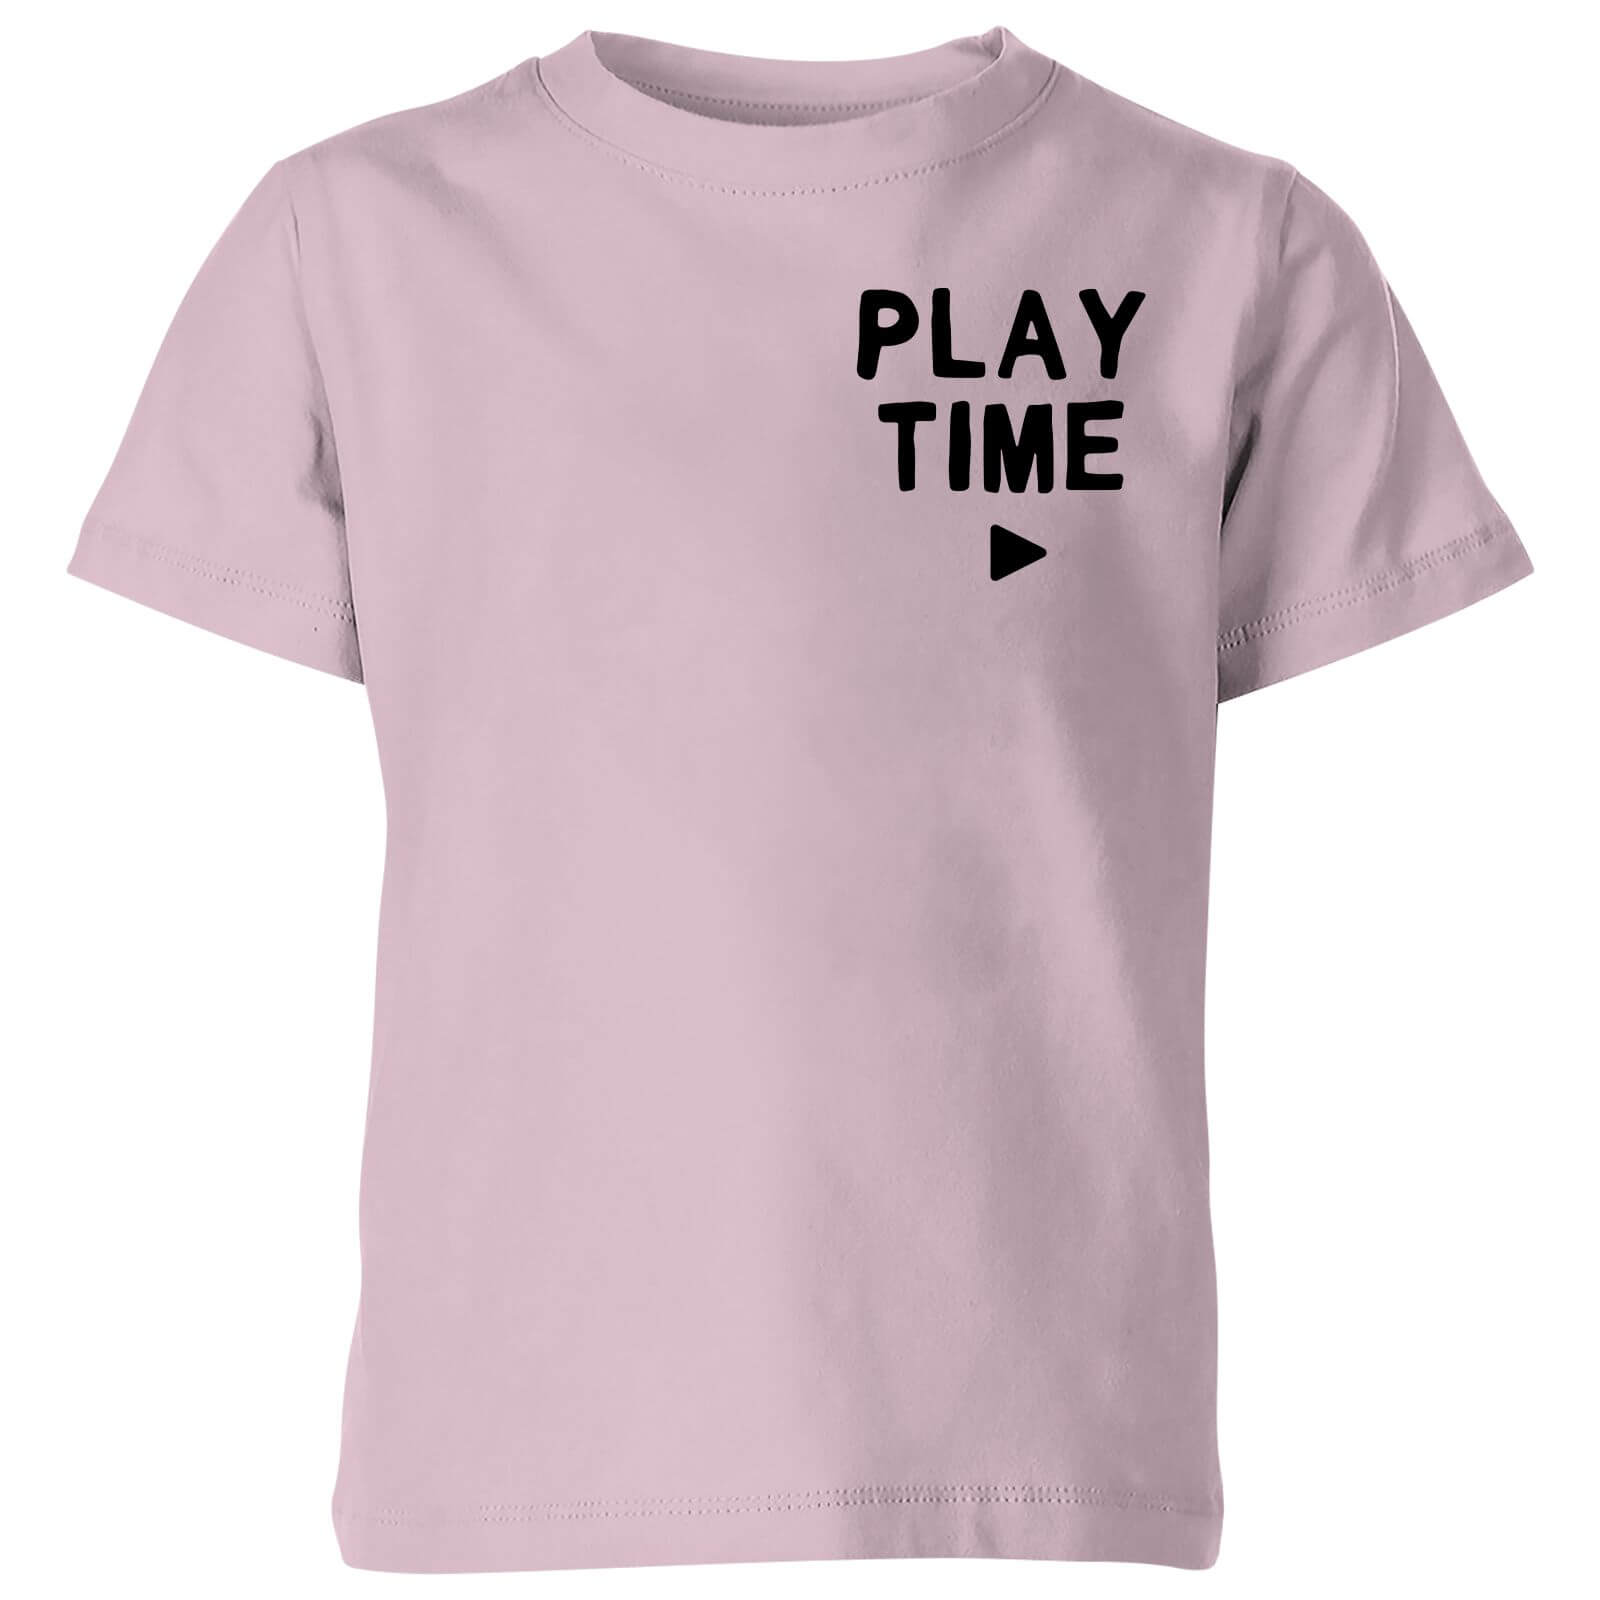 My Little Rascal Play Time Baby Pink Kids